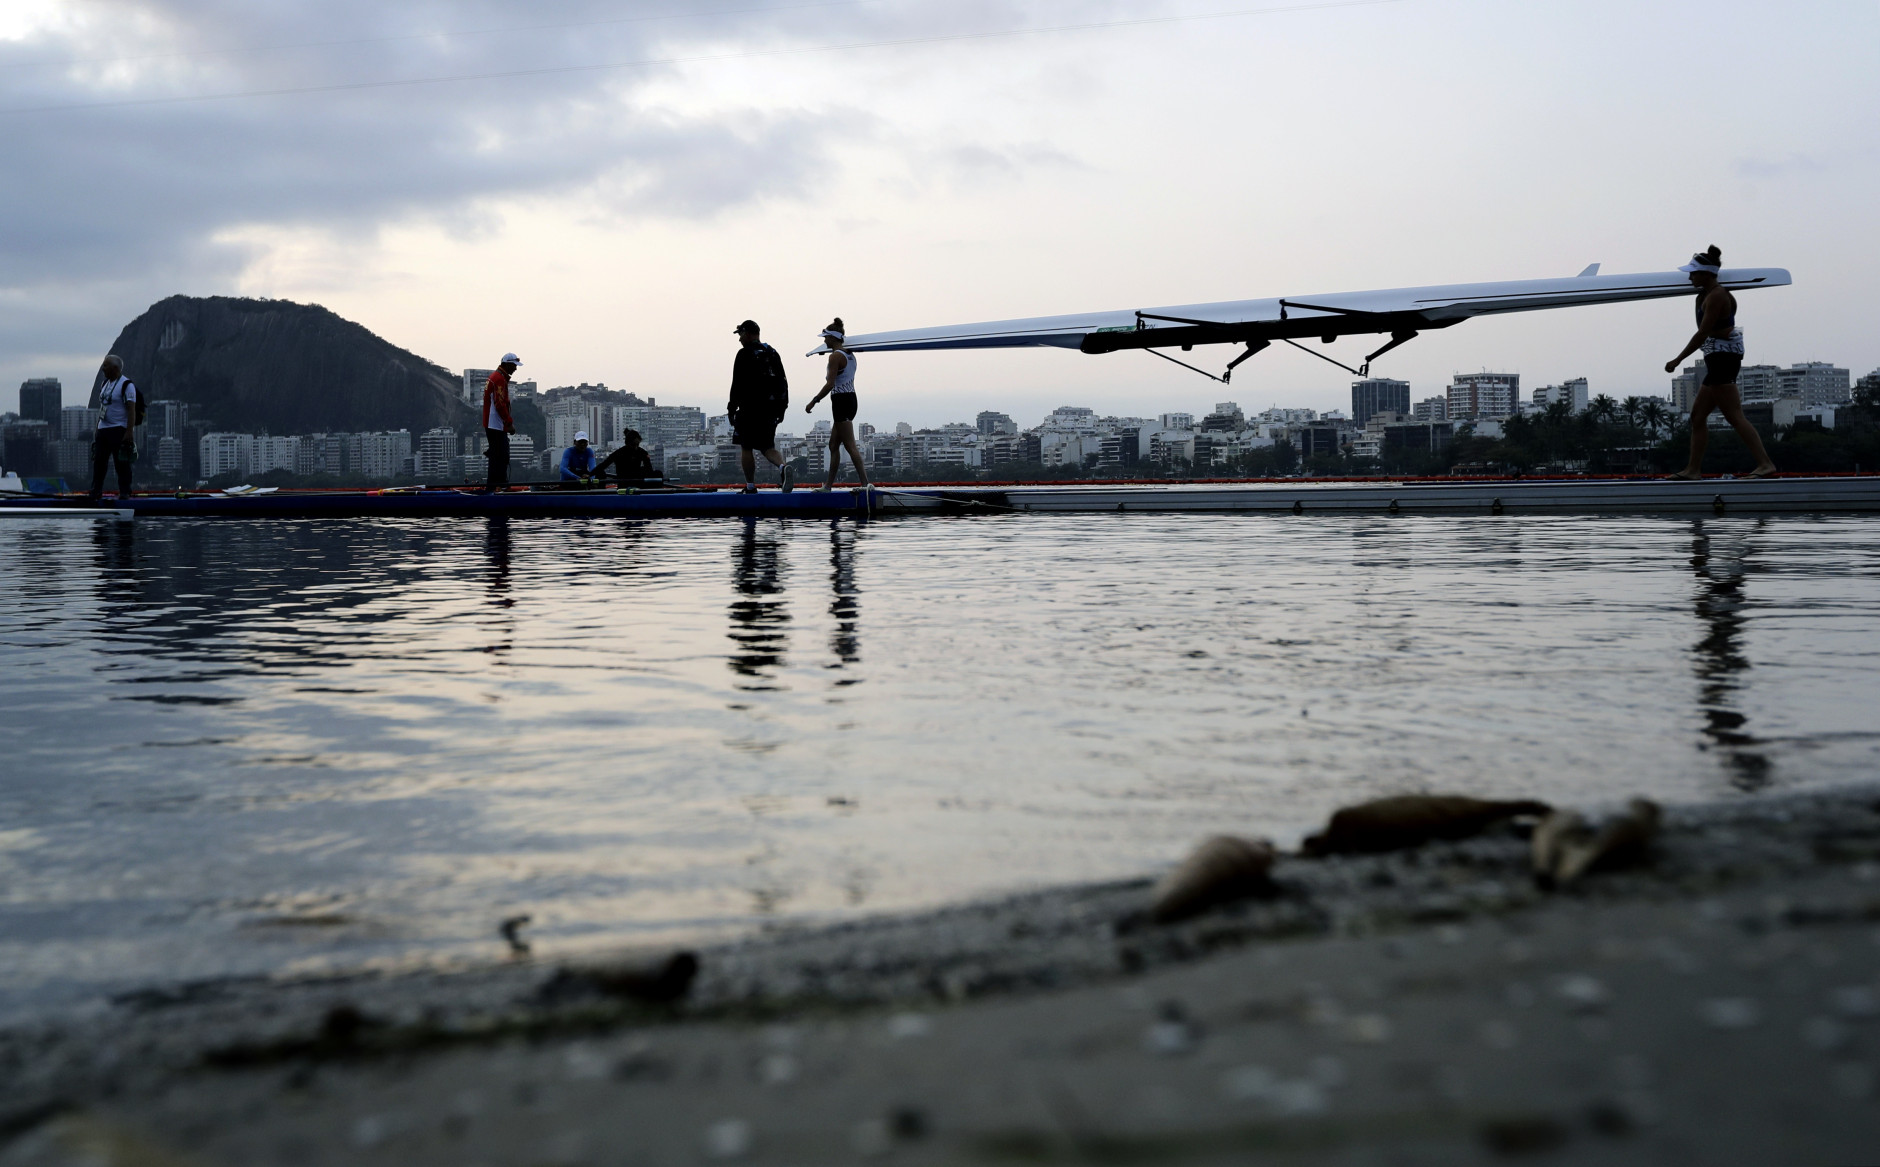 New Zealand rowers prepare to practice prior to competition during the 2016 Summer Olympics in Rio de Janeiro, Brazil, Tuesday, Aug. 9, 2016. (AP Photo/Matt York)